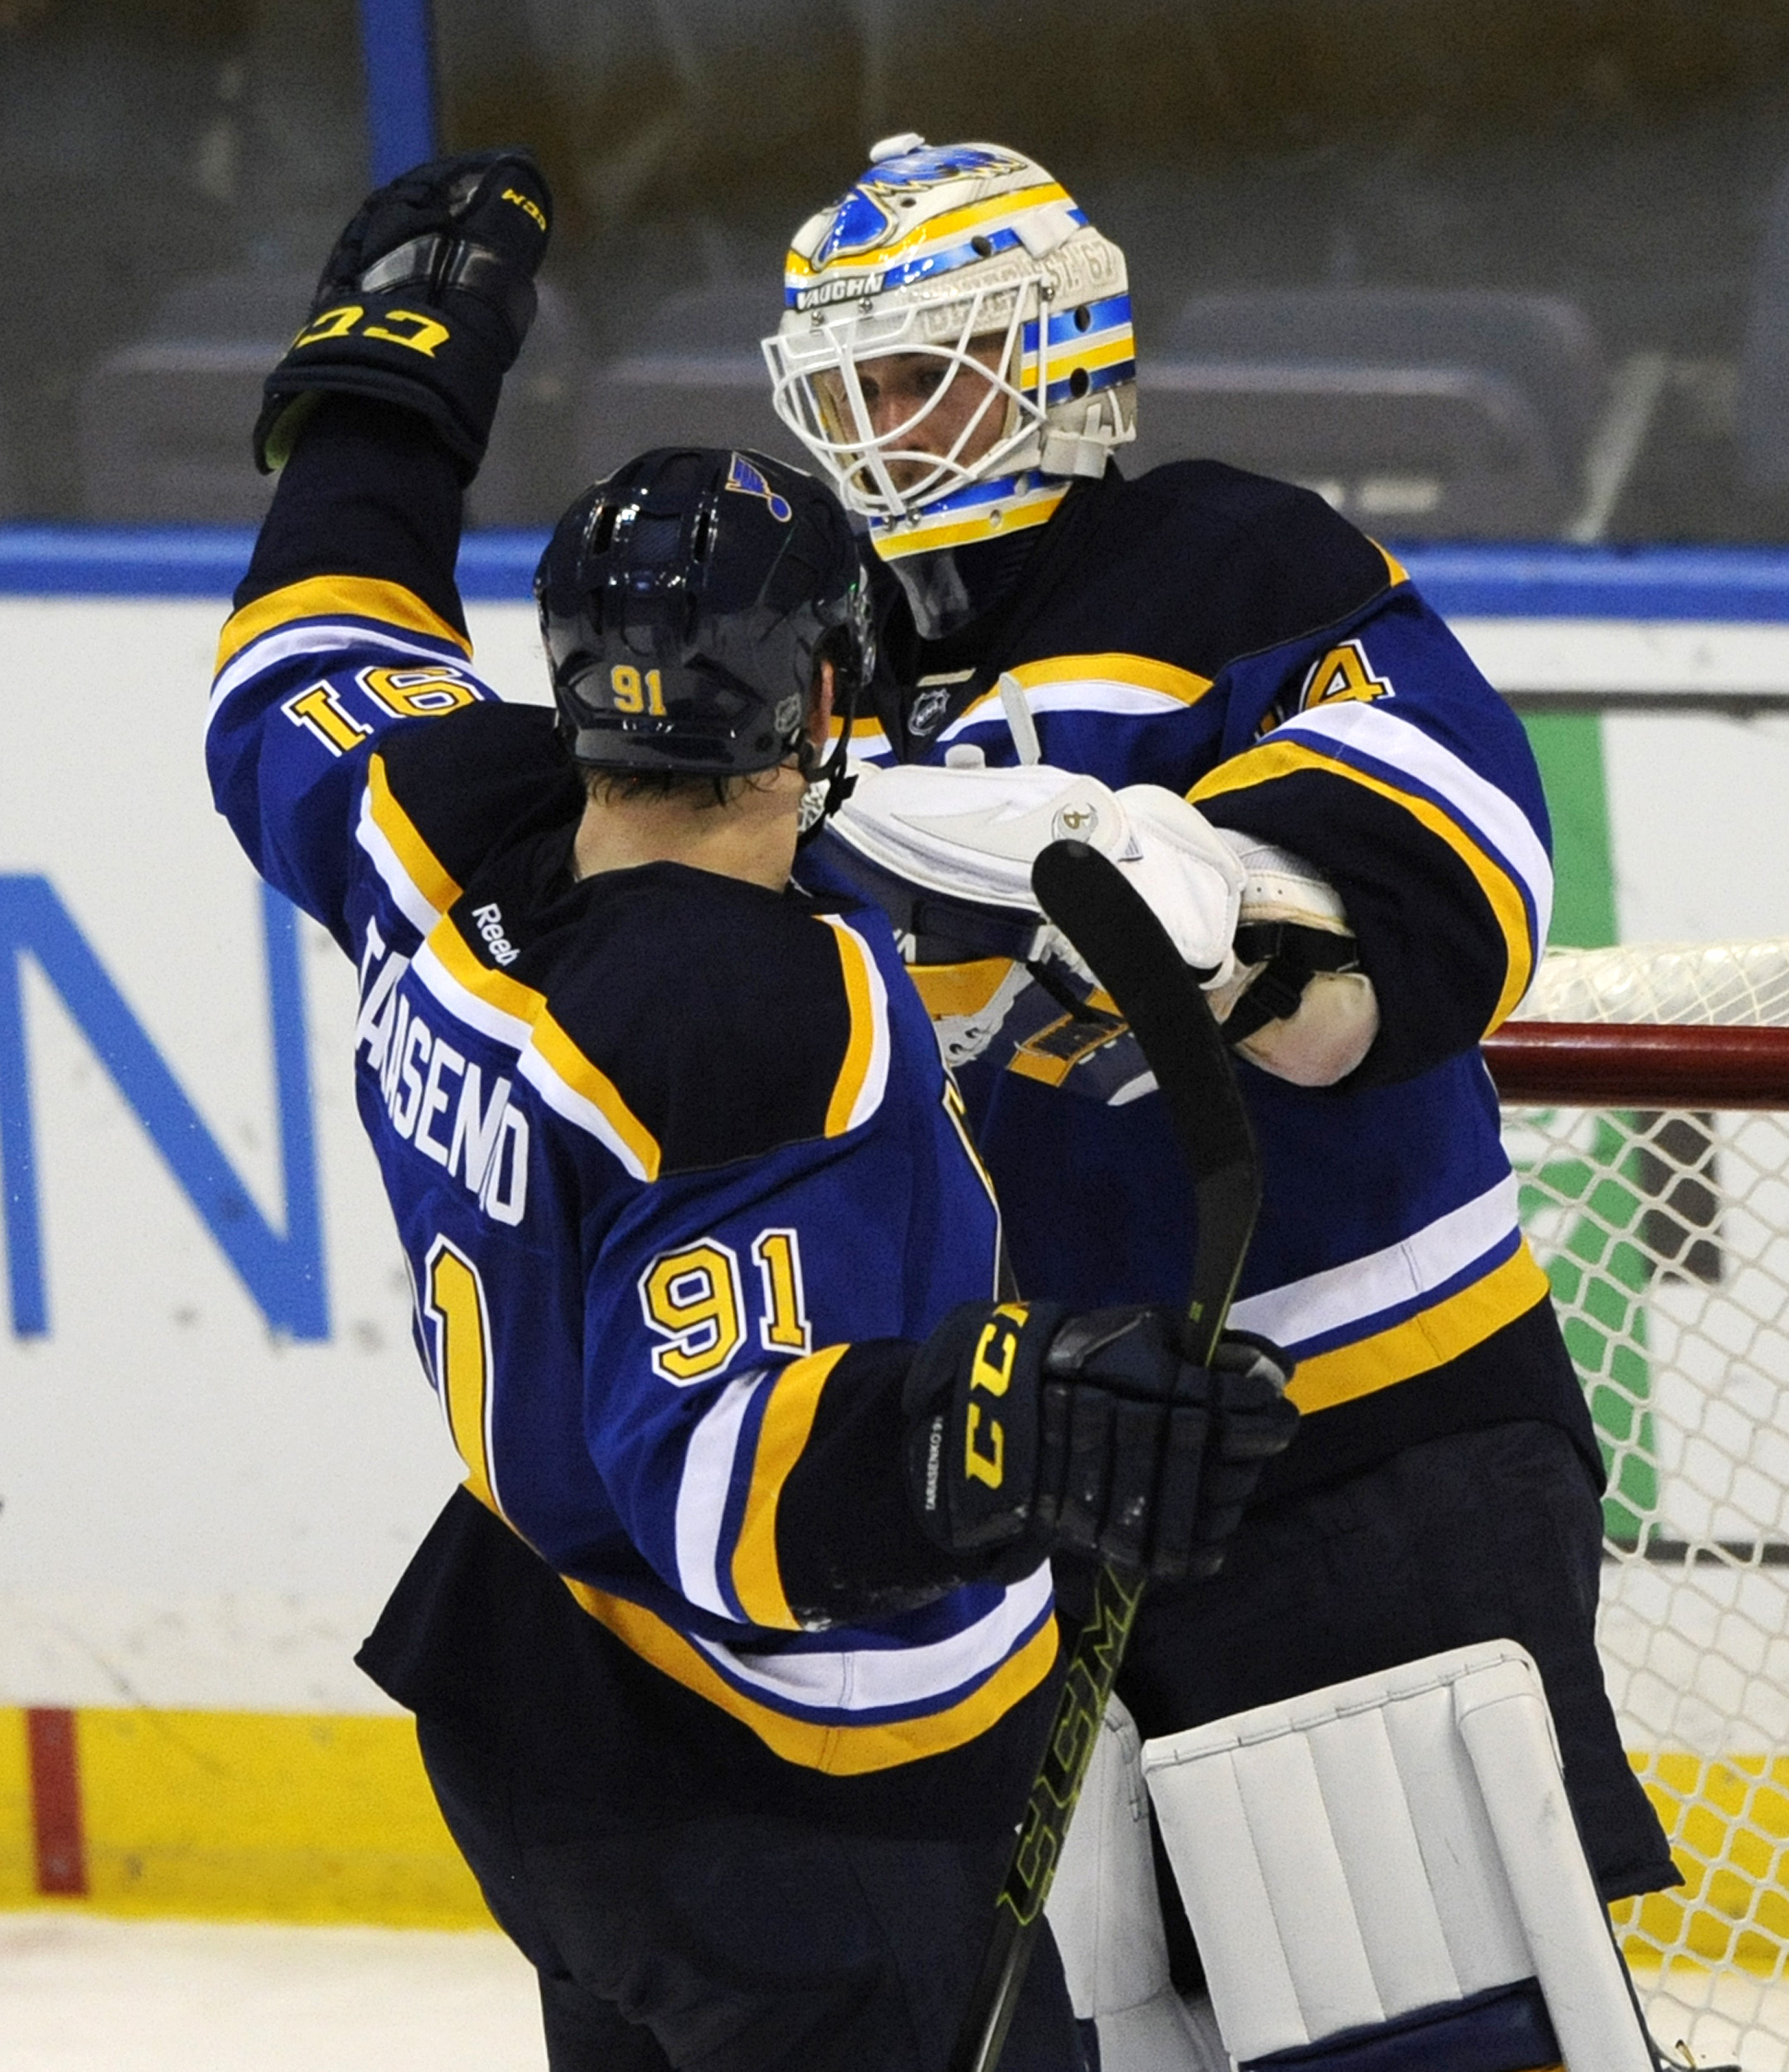 St. Louis Blues' Vladimir Tarasenko (91), of Russia, congratulates Blues' goalie Jake Allen, right, after their 2-1 victory over the Nashville Predators in an NHL hockey game, Thursday, Dec. 17, 2015, in St. Louis. (AP Photo/Bill Boyce)